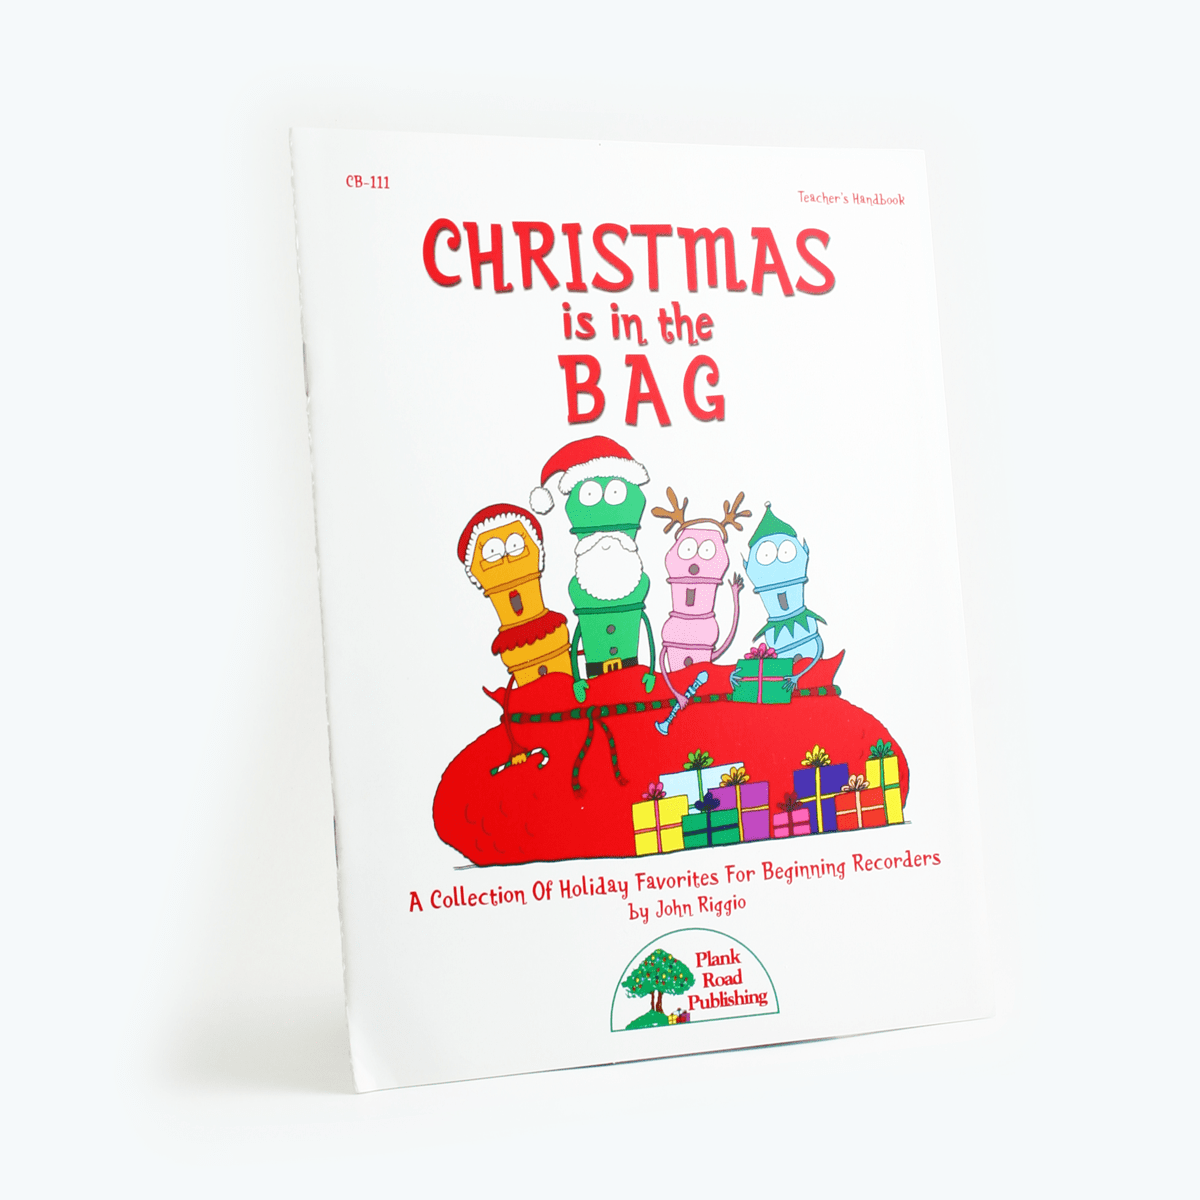 Christmas is in the BAG